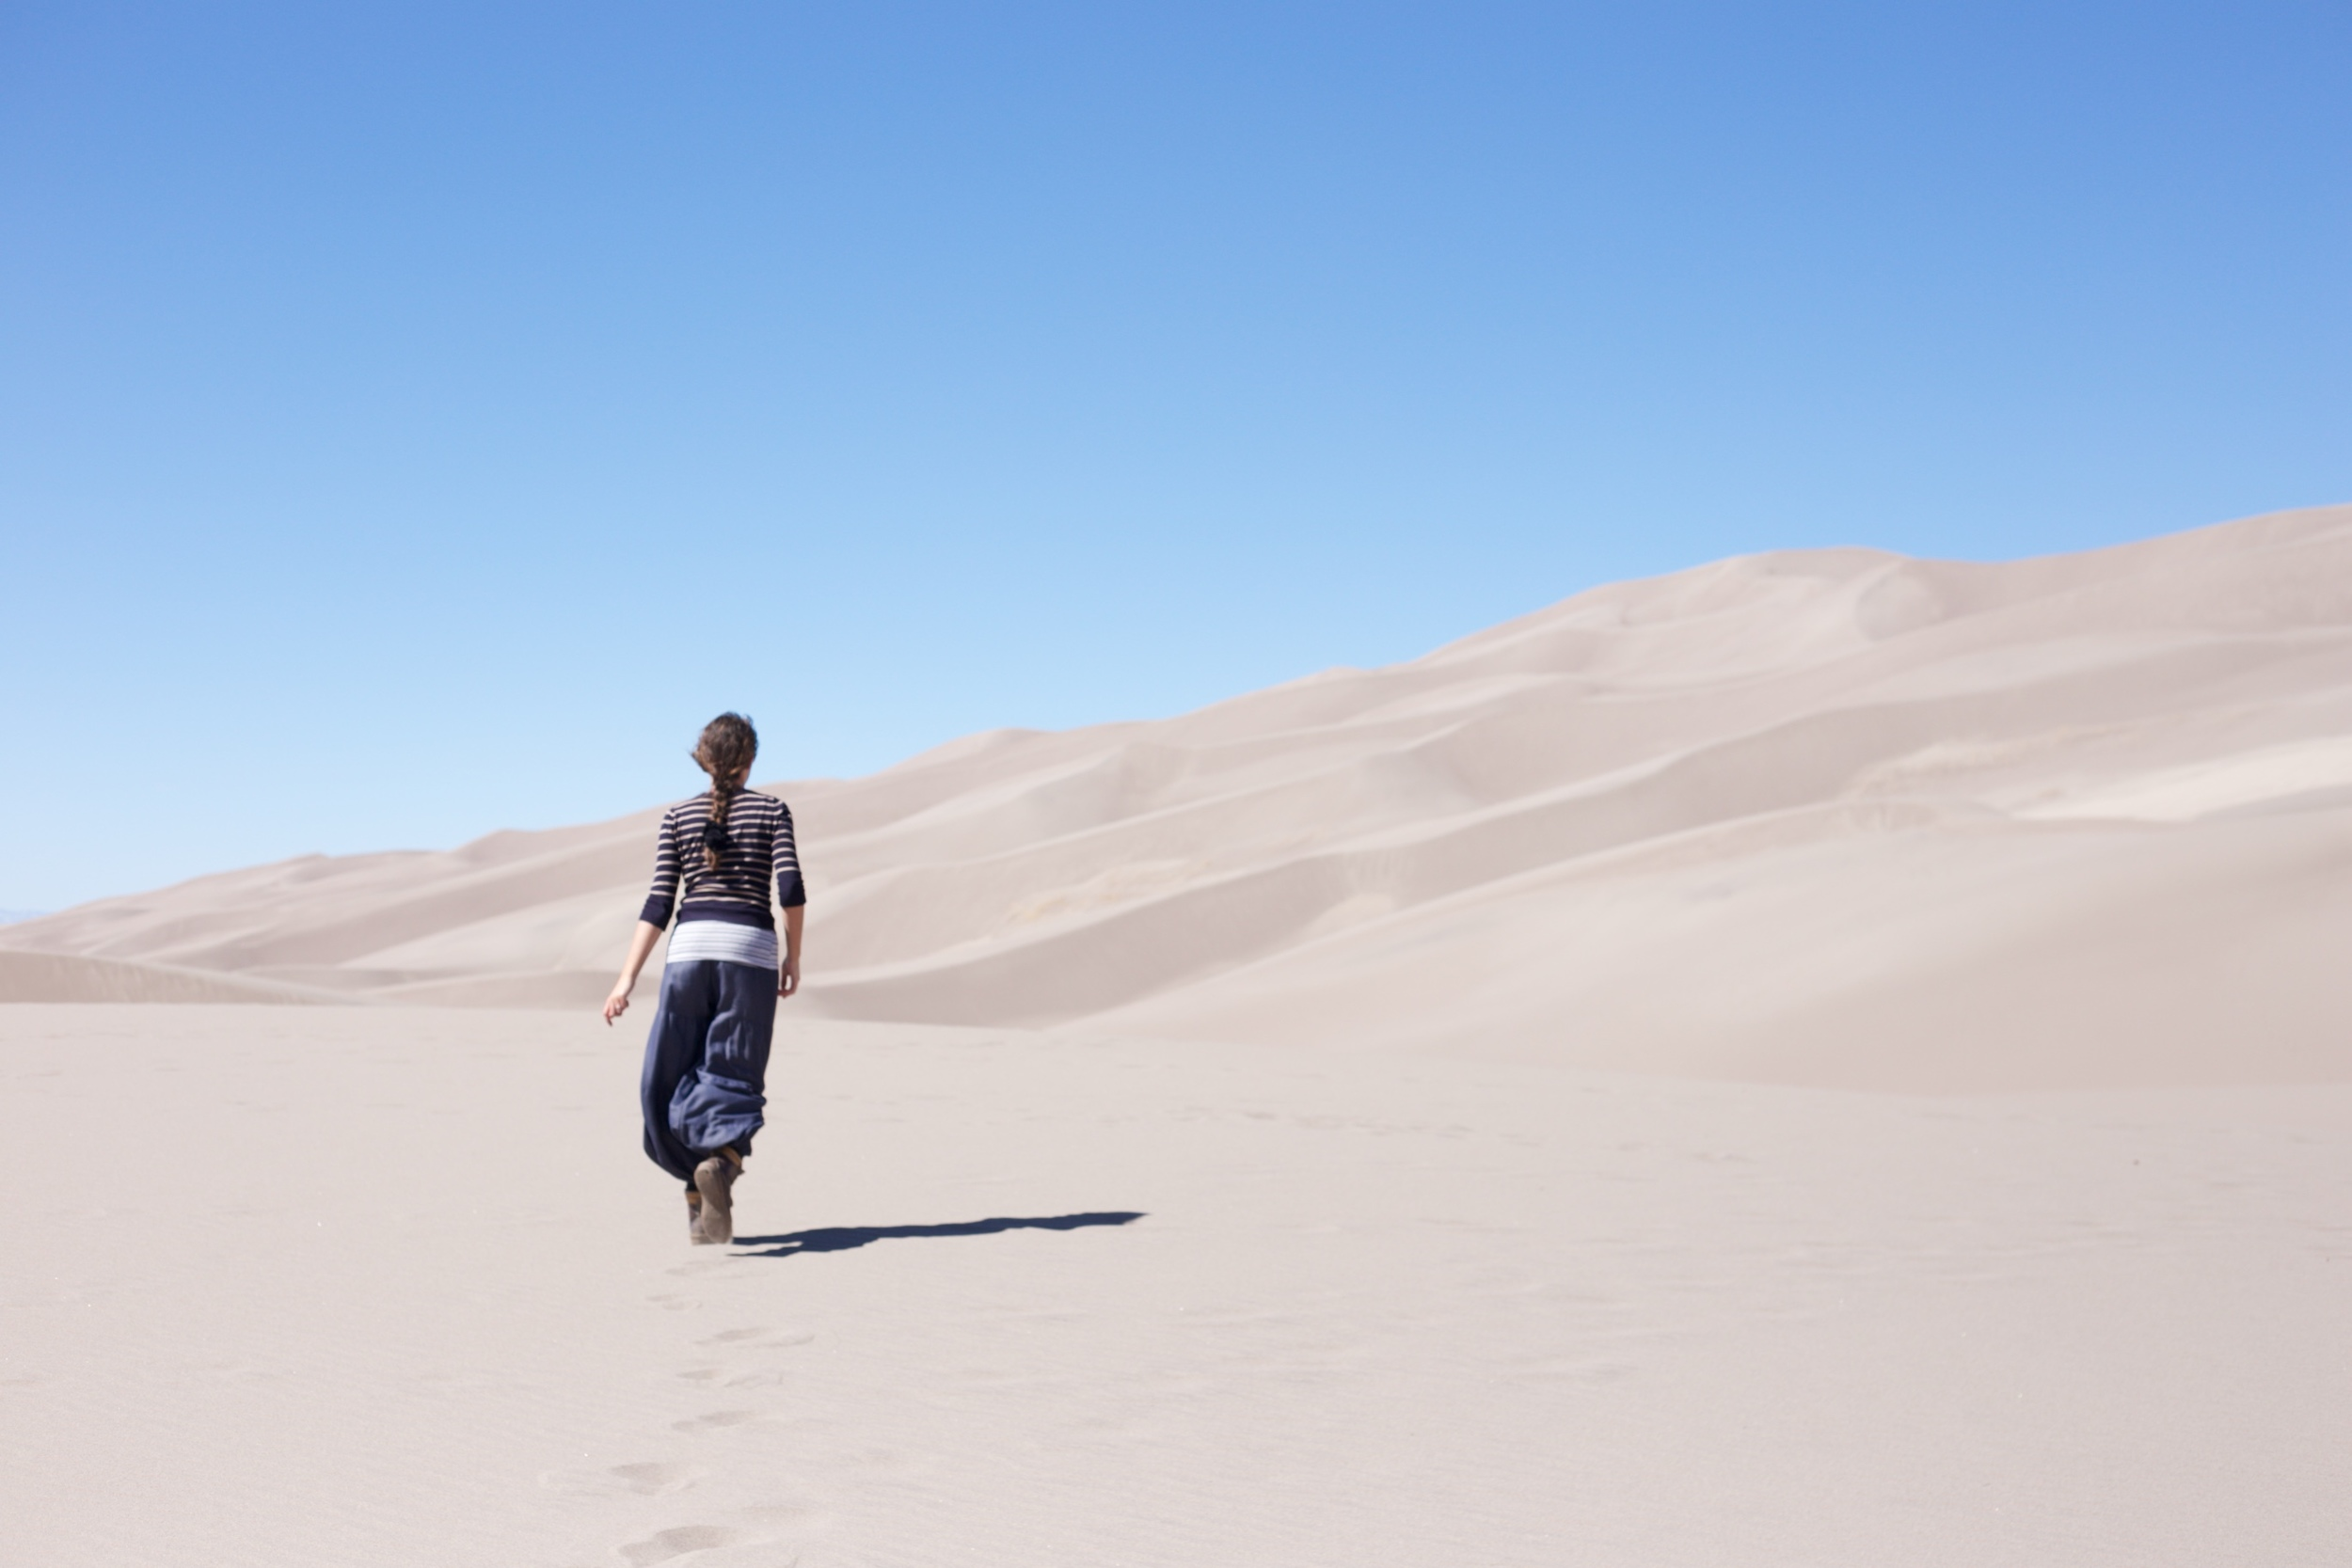 A traveler in the sand dunes of a small desert.